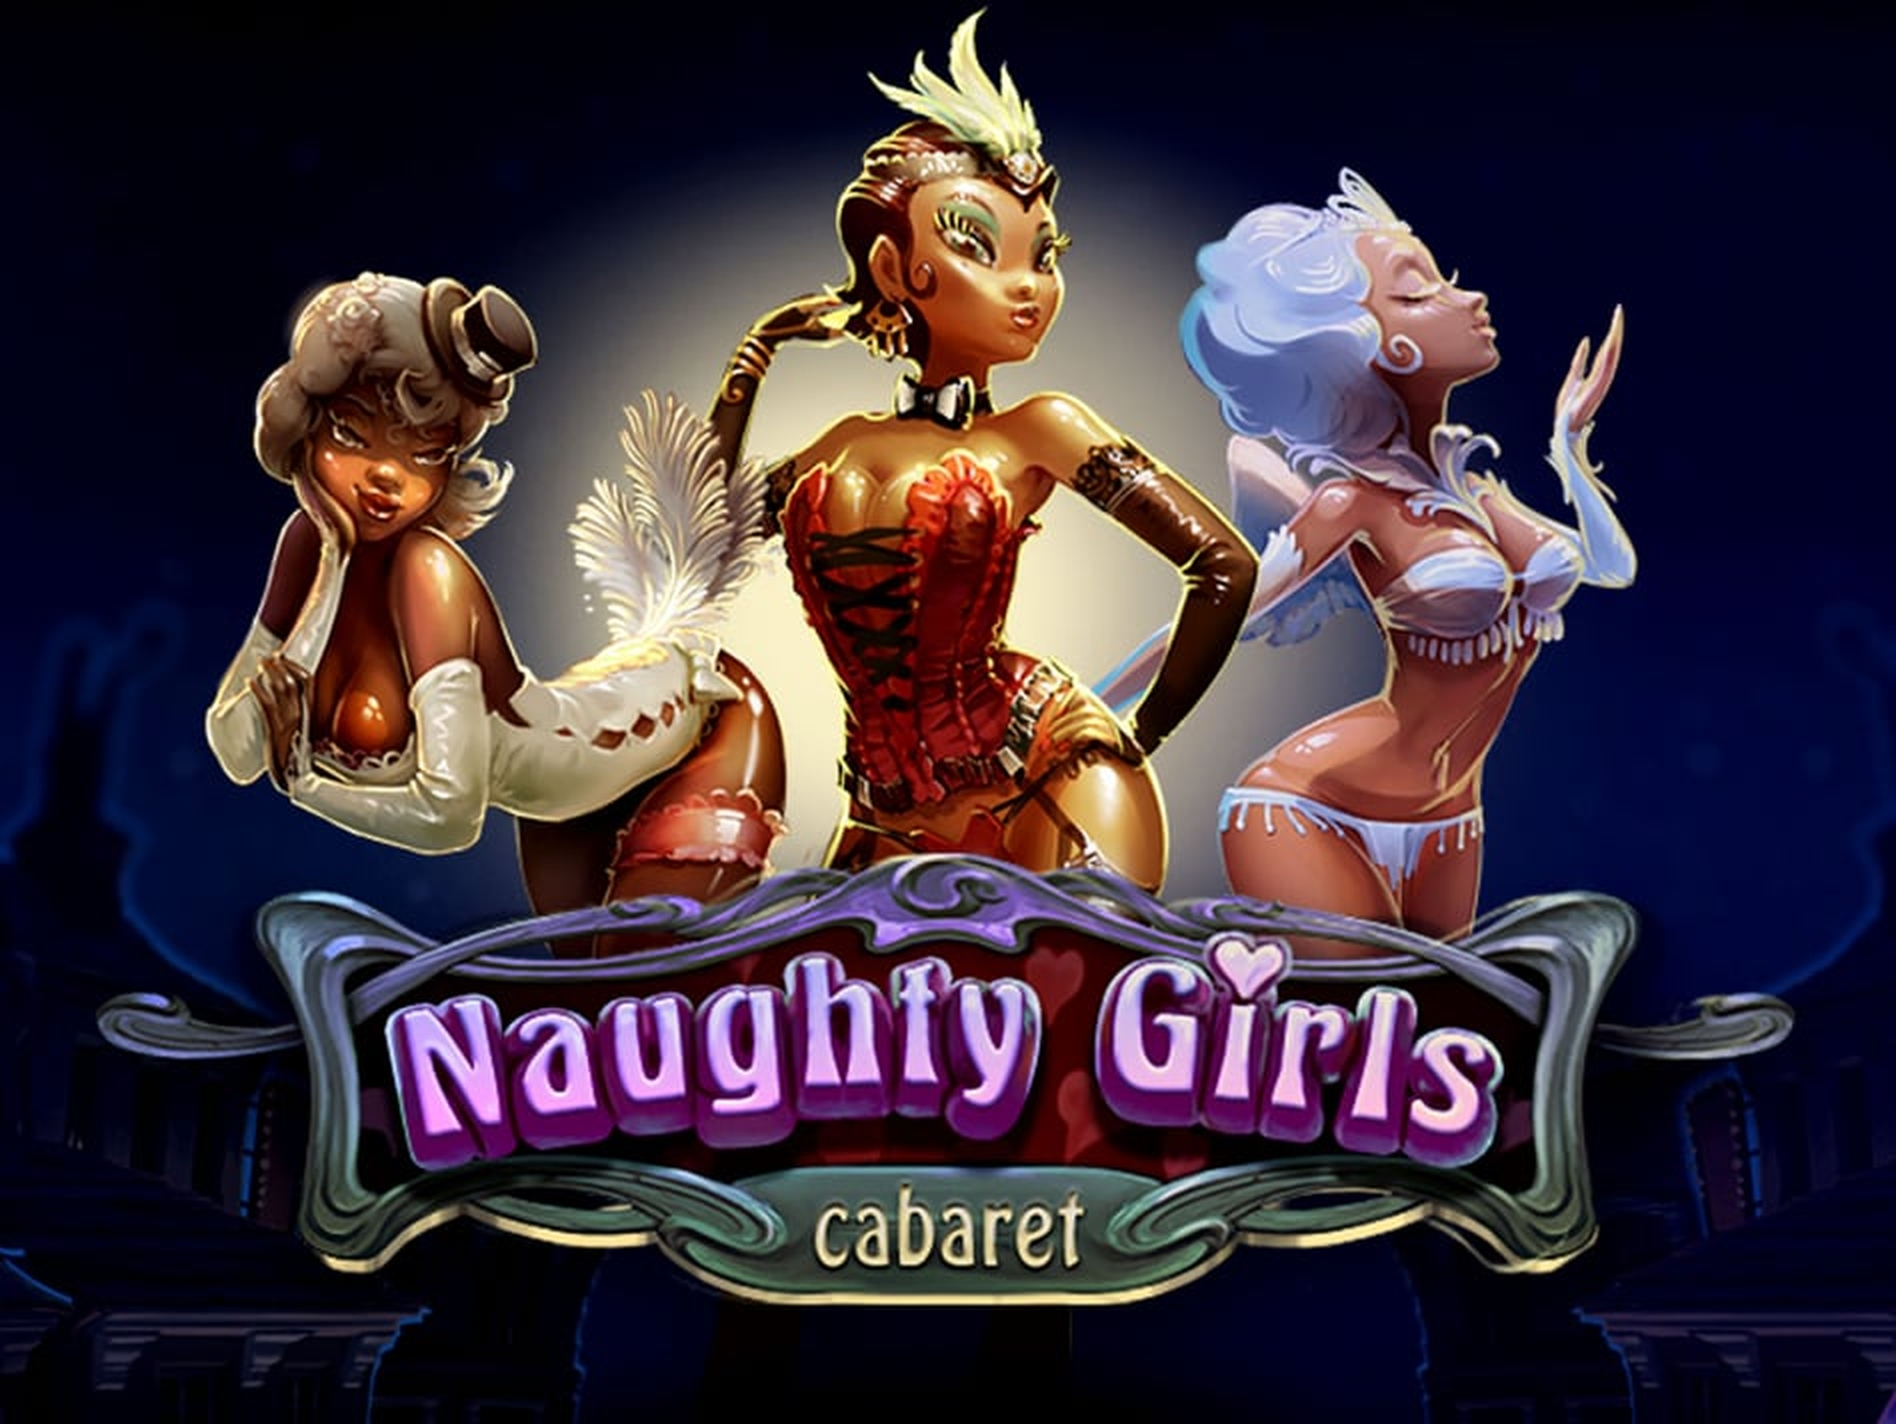 The Naughty Girls Cabaret Online Slot Demo Game by Evoplay Entertainment